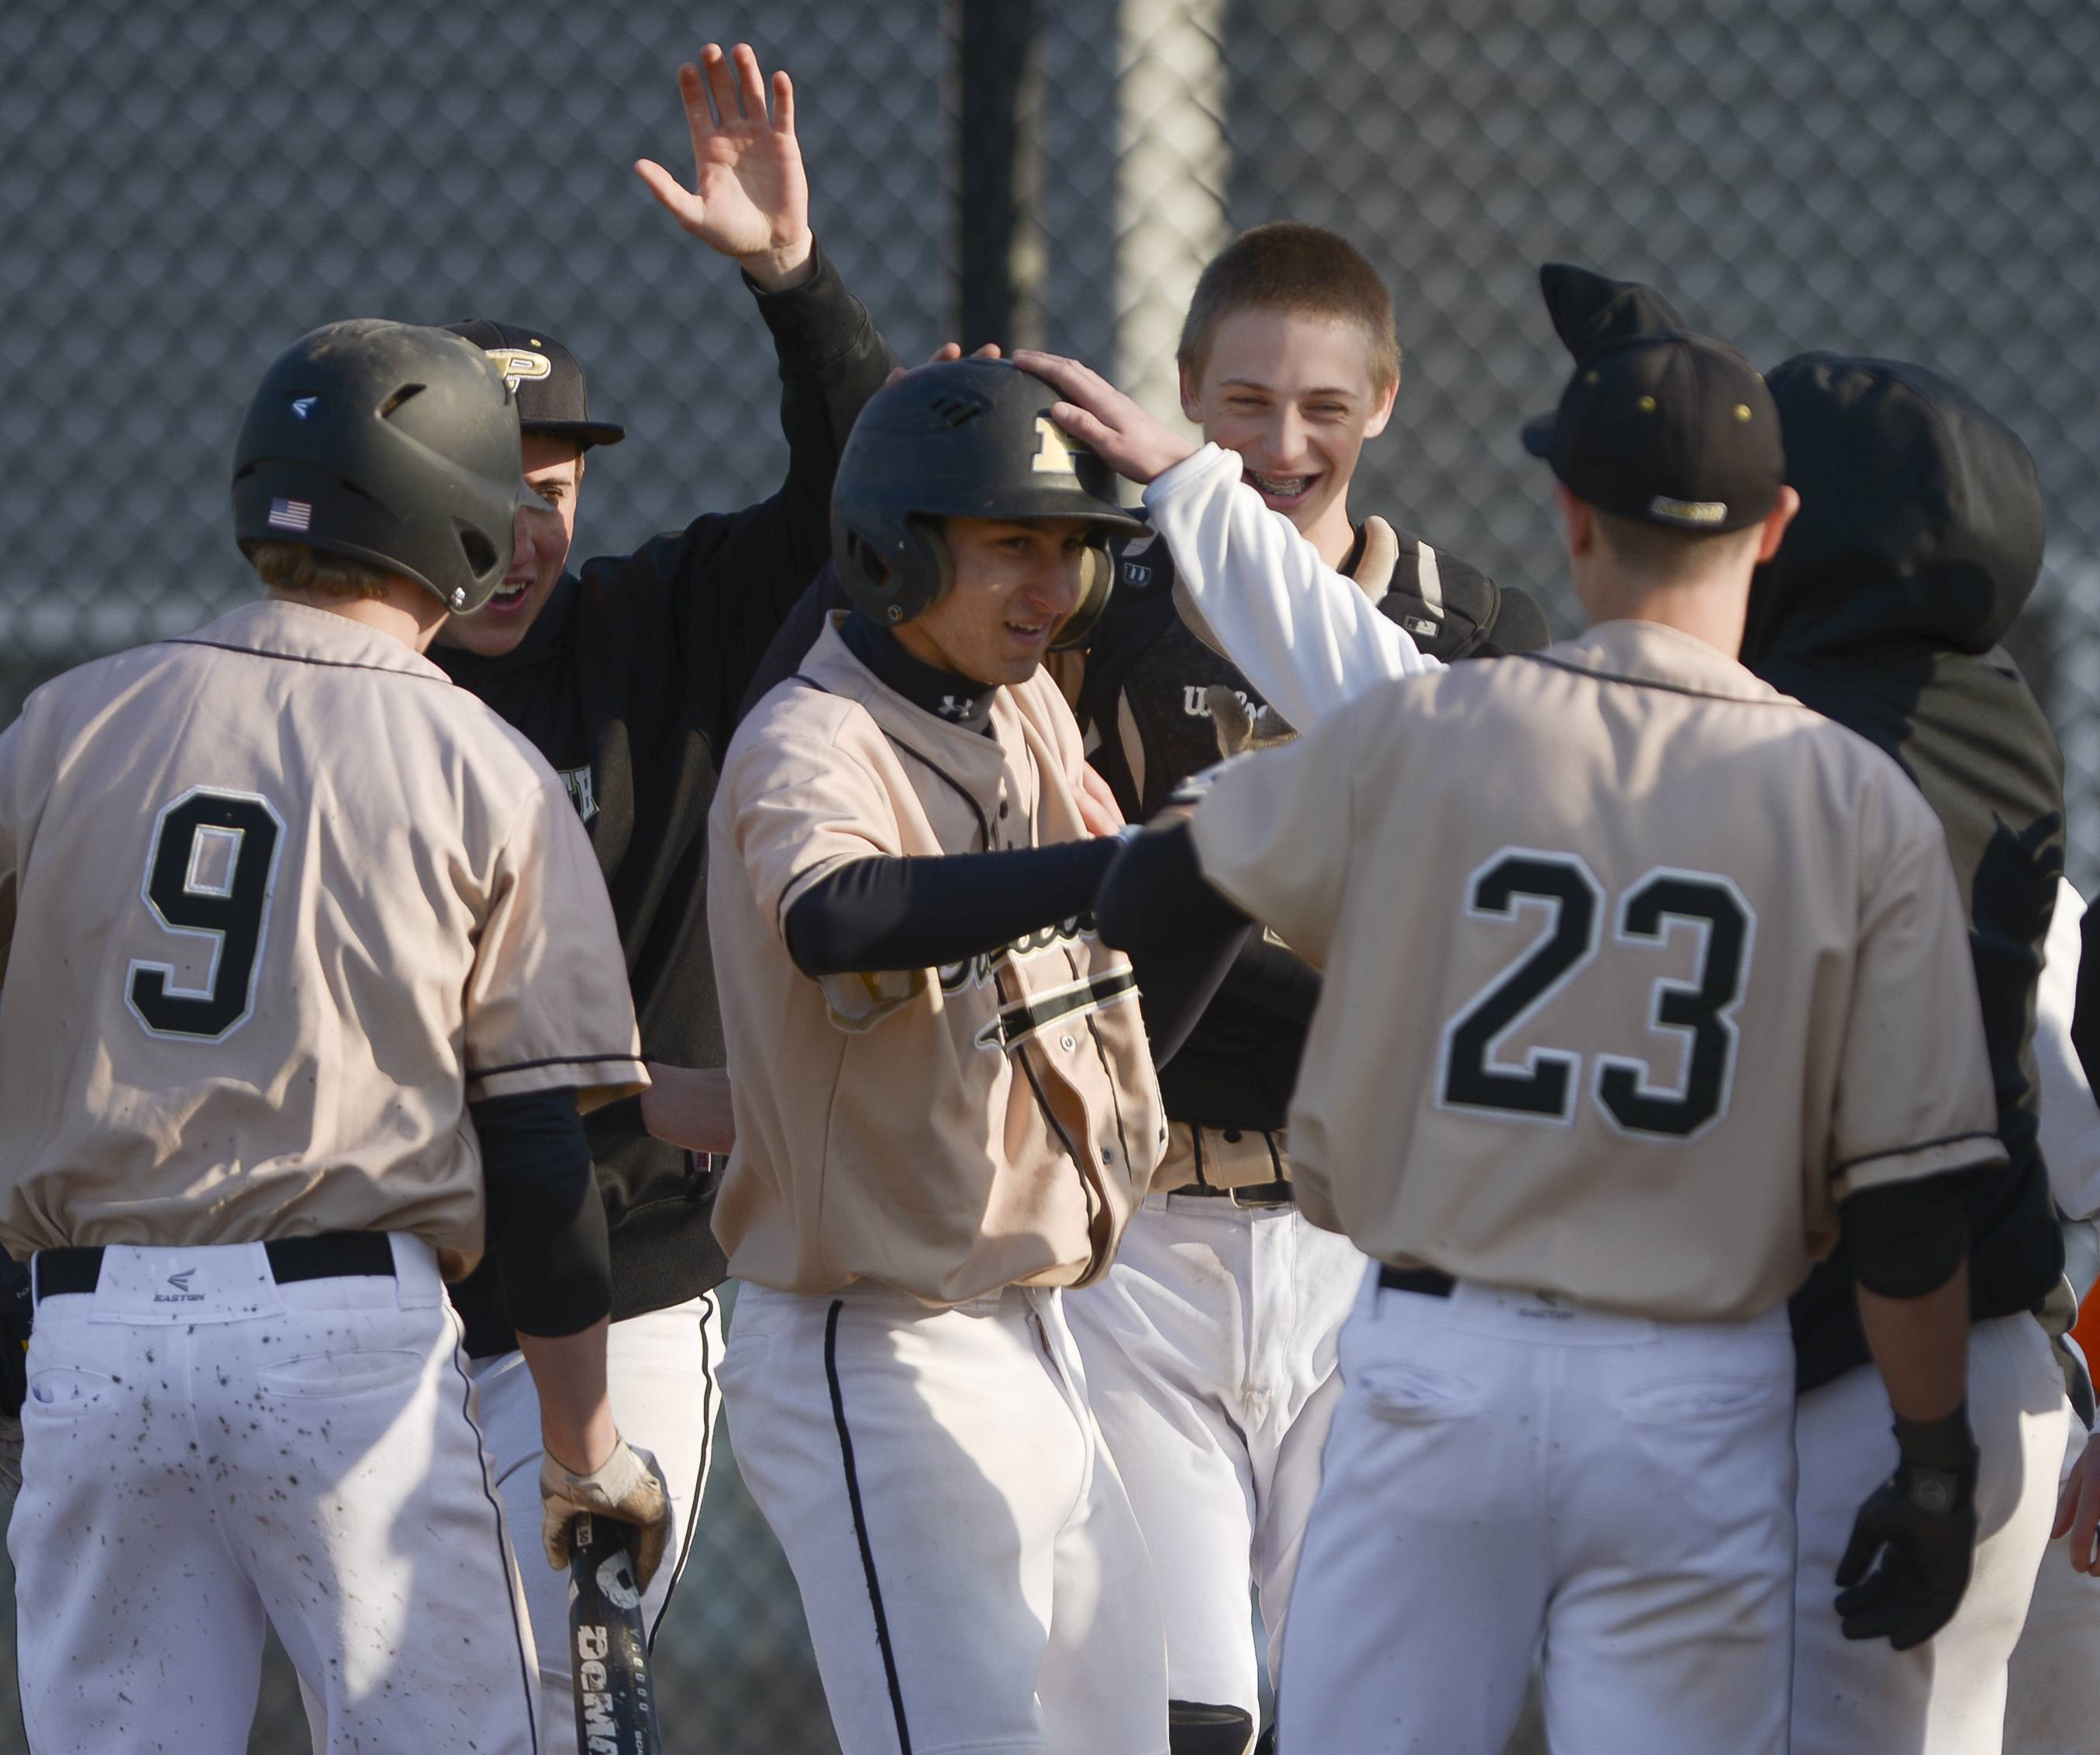 Glenbard North's Jim Krippinger is congratulated by his teammates after hit a home run during his team's 6-0 win over Naperville North at home Wednesday.